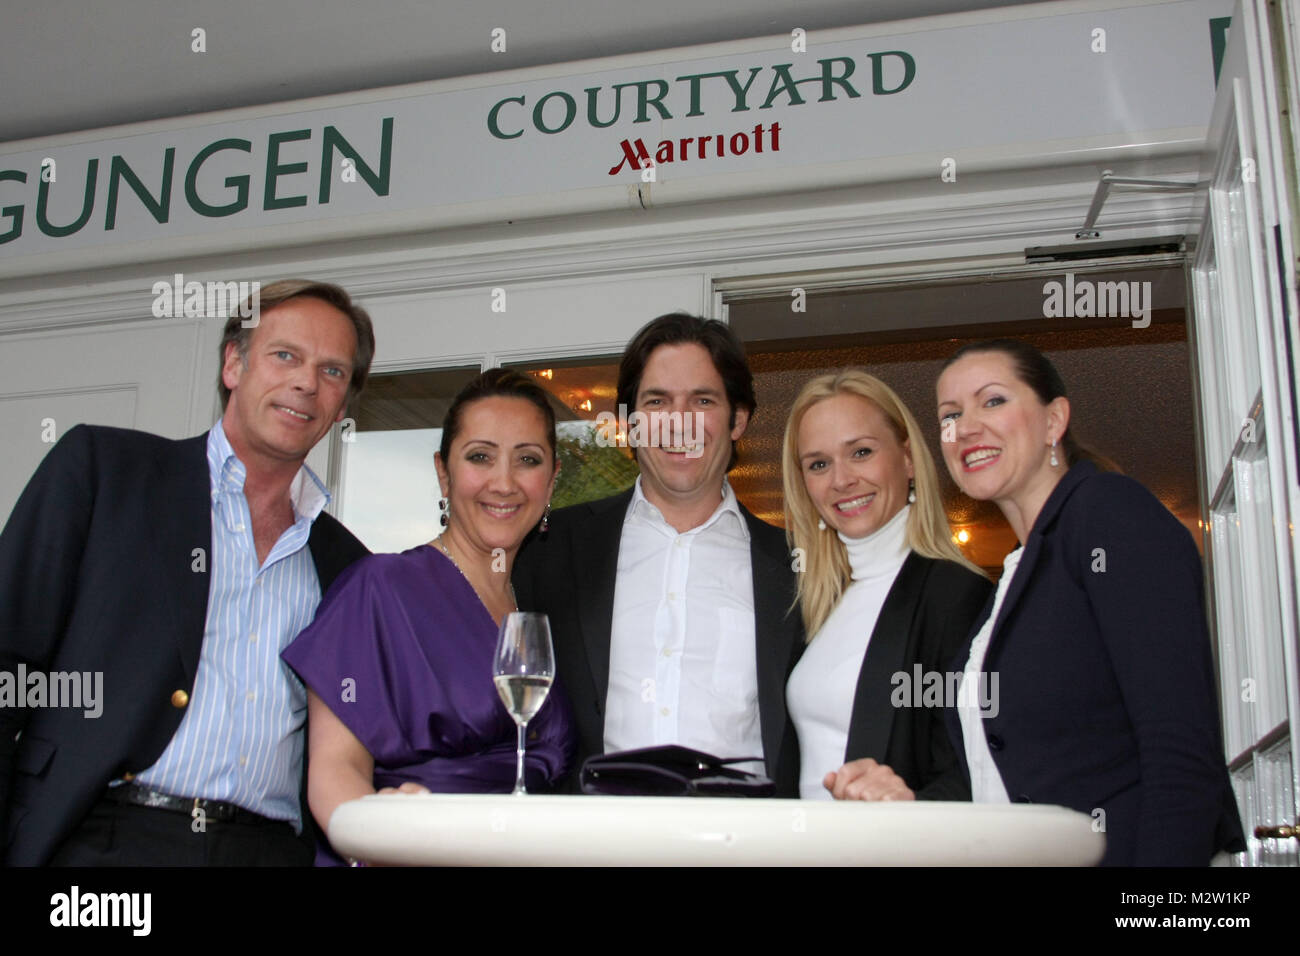 'New Courtyard Party' im First Class Hotel Courtyard by Marriott Hamburg Airport, nach dem Umbauarbeiten - Stock Image